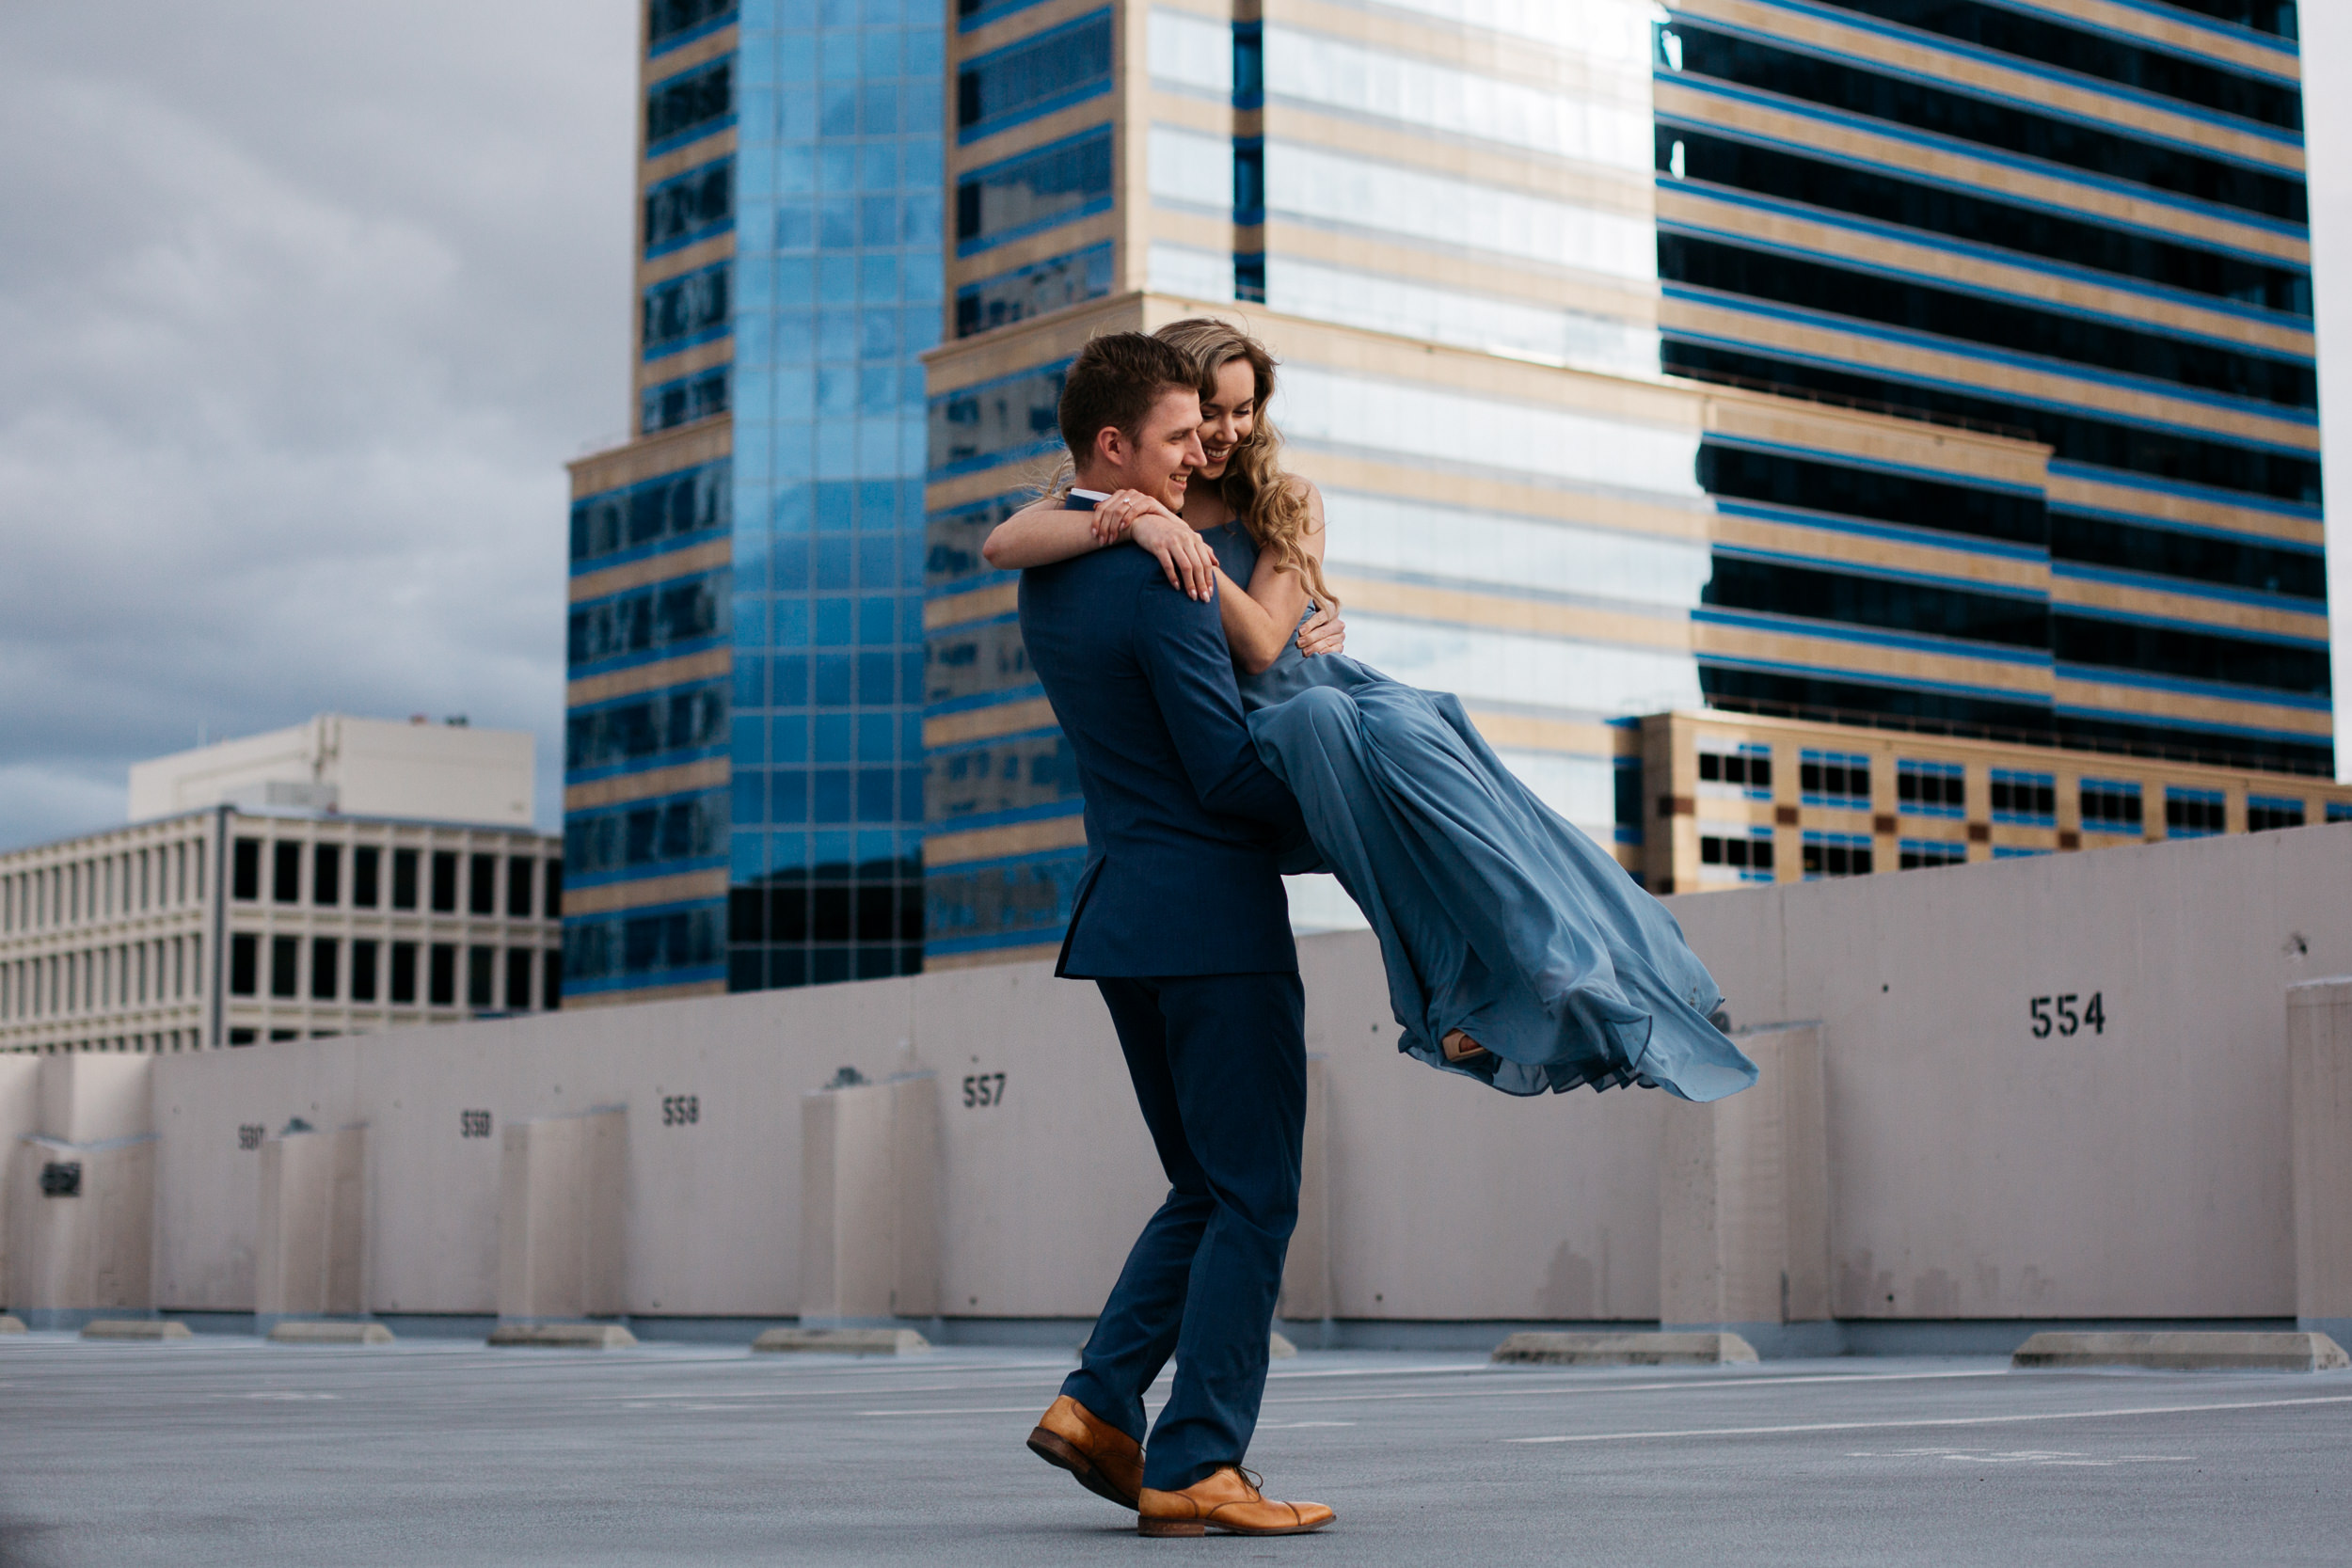 sacramento_engagement_session-104.jpg